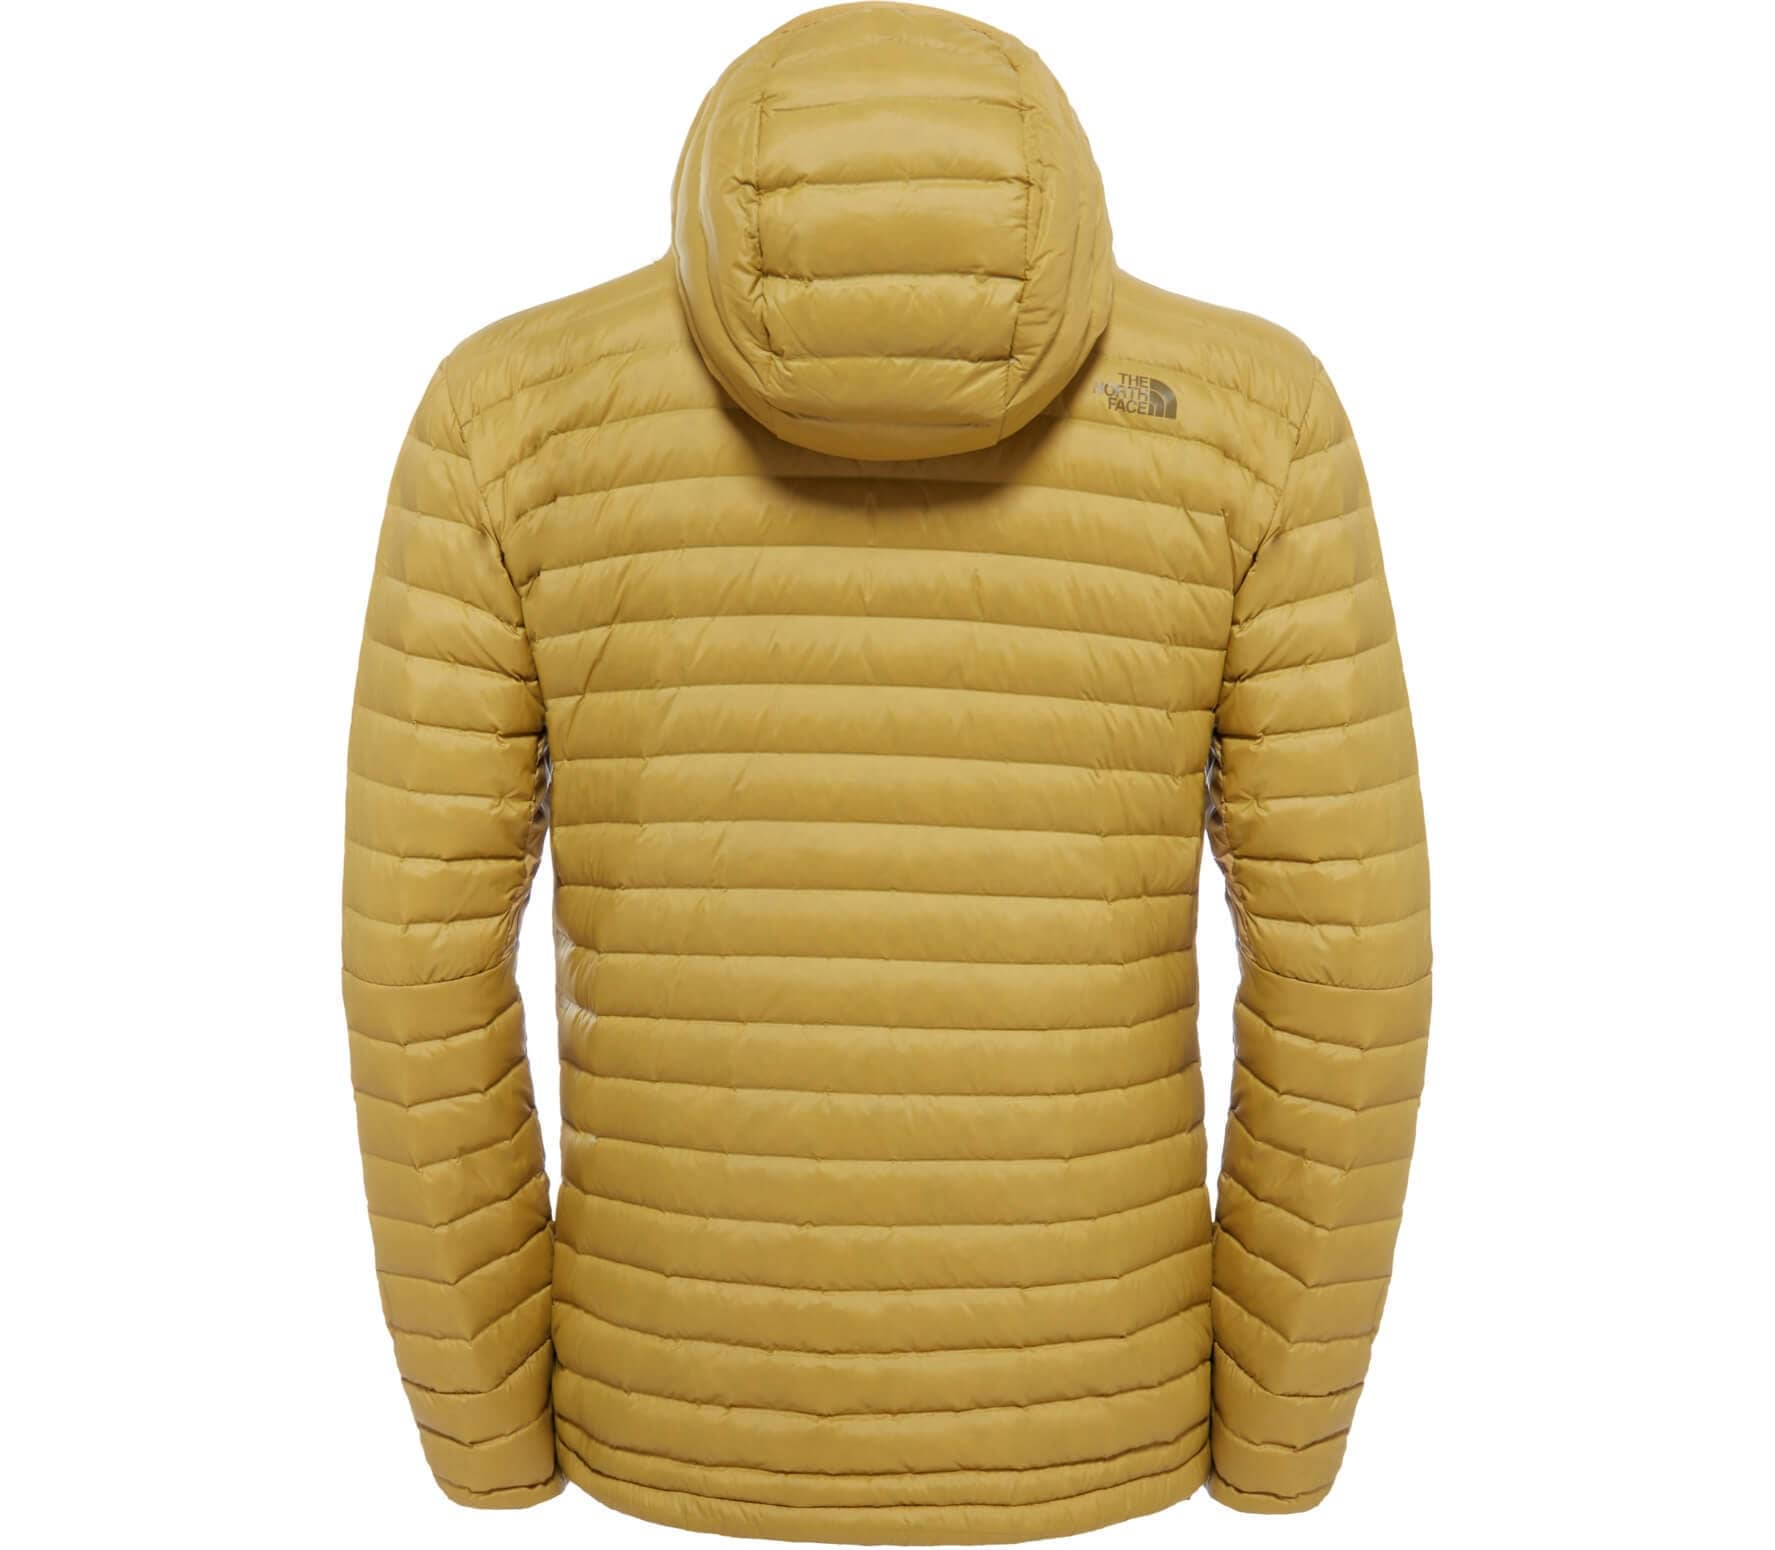 85323efc64 The North Face - Premonition men s down jacket (yellow) - buy it at ...